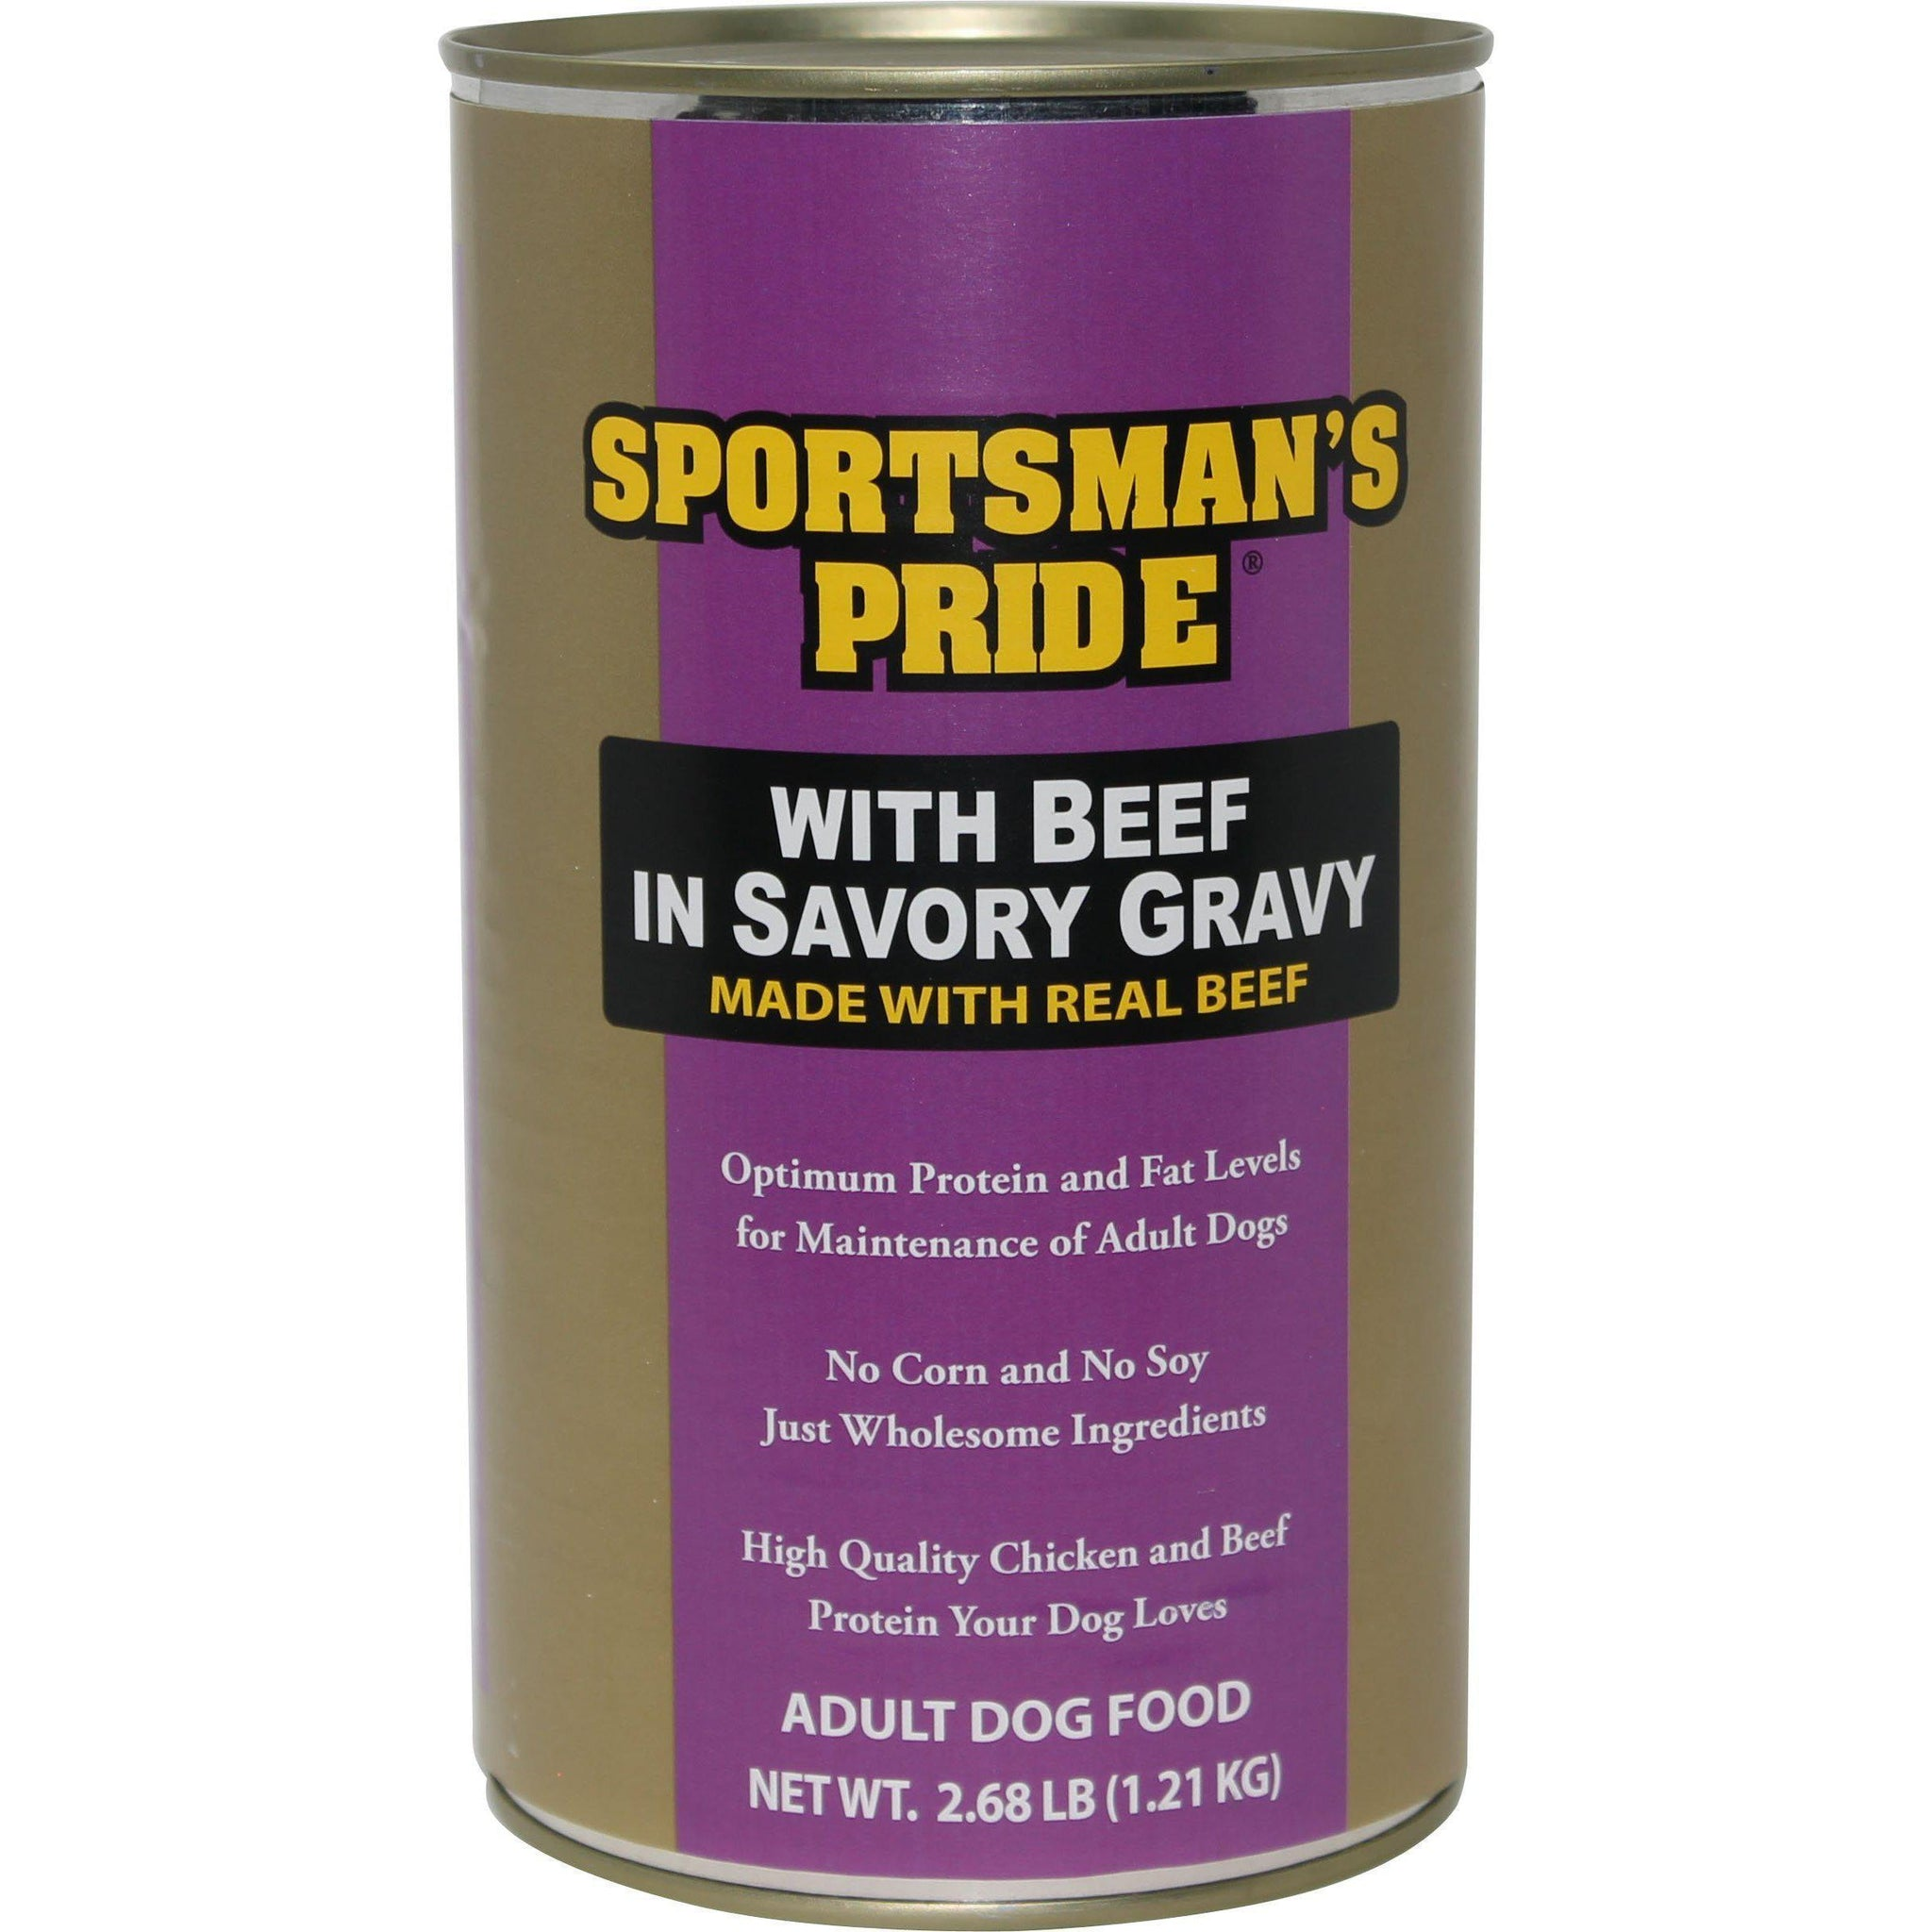 Triumph Pet - Sportsmans - Sportsman'S Pride Canned Dog Food With Beef In Savory Gravy (Case Of 6 )-Triumph Pet - Sportsmans-DirtyFurClothing